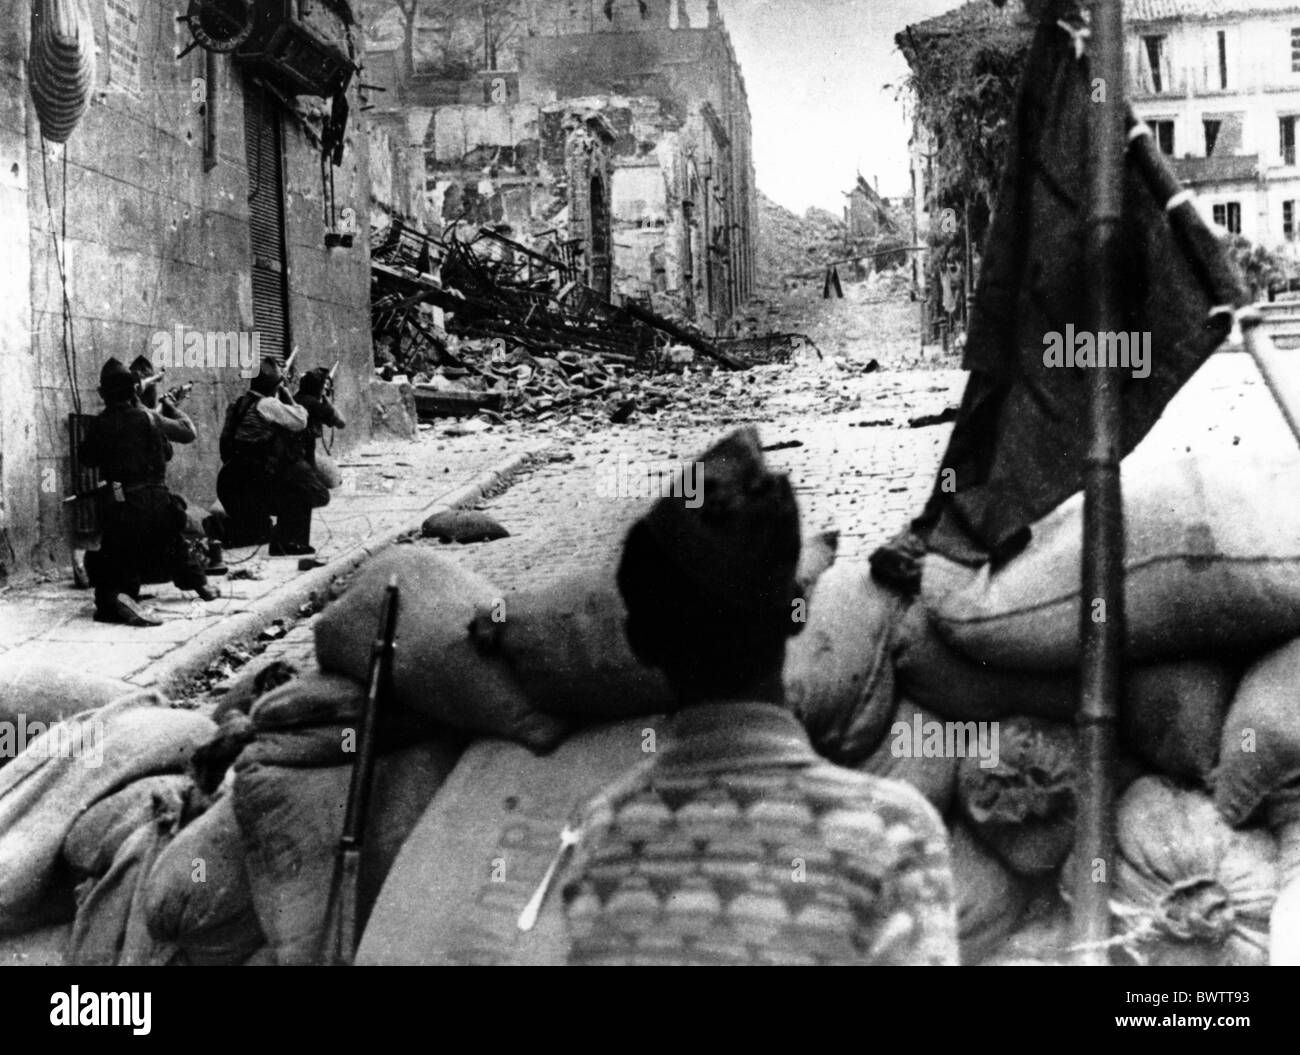 Spanish Civil War Spain Europe Irun Franco troops 1936 sandbag street fighting historical historic history - Stock Image